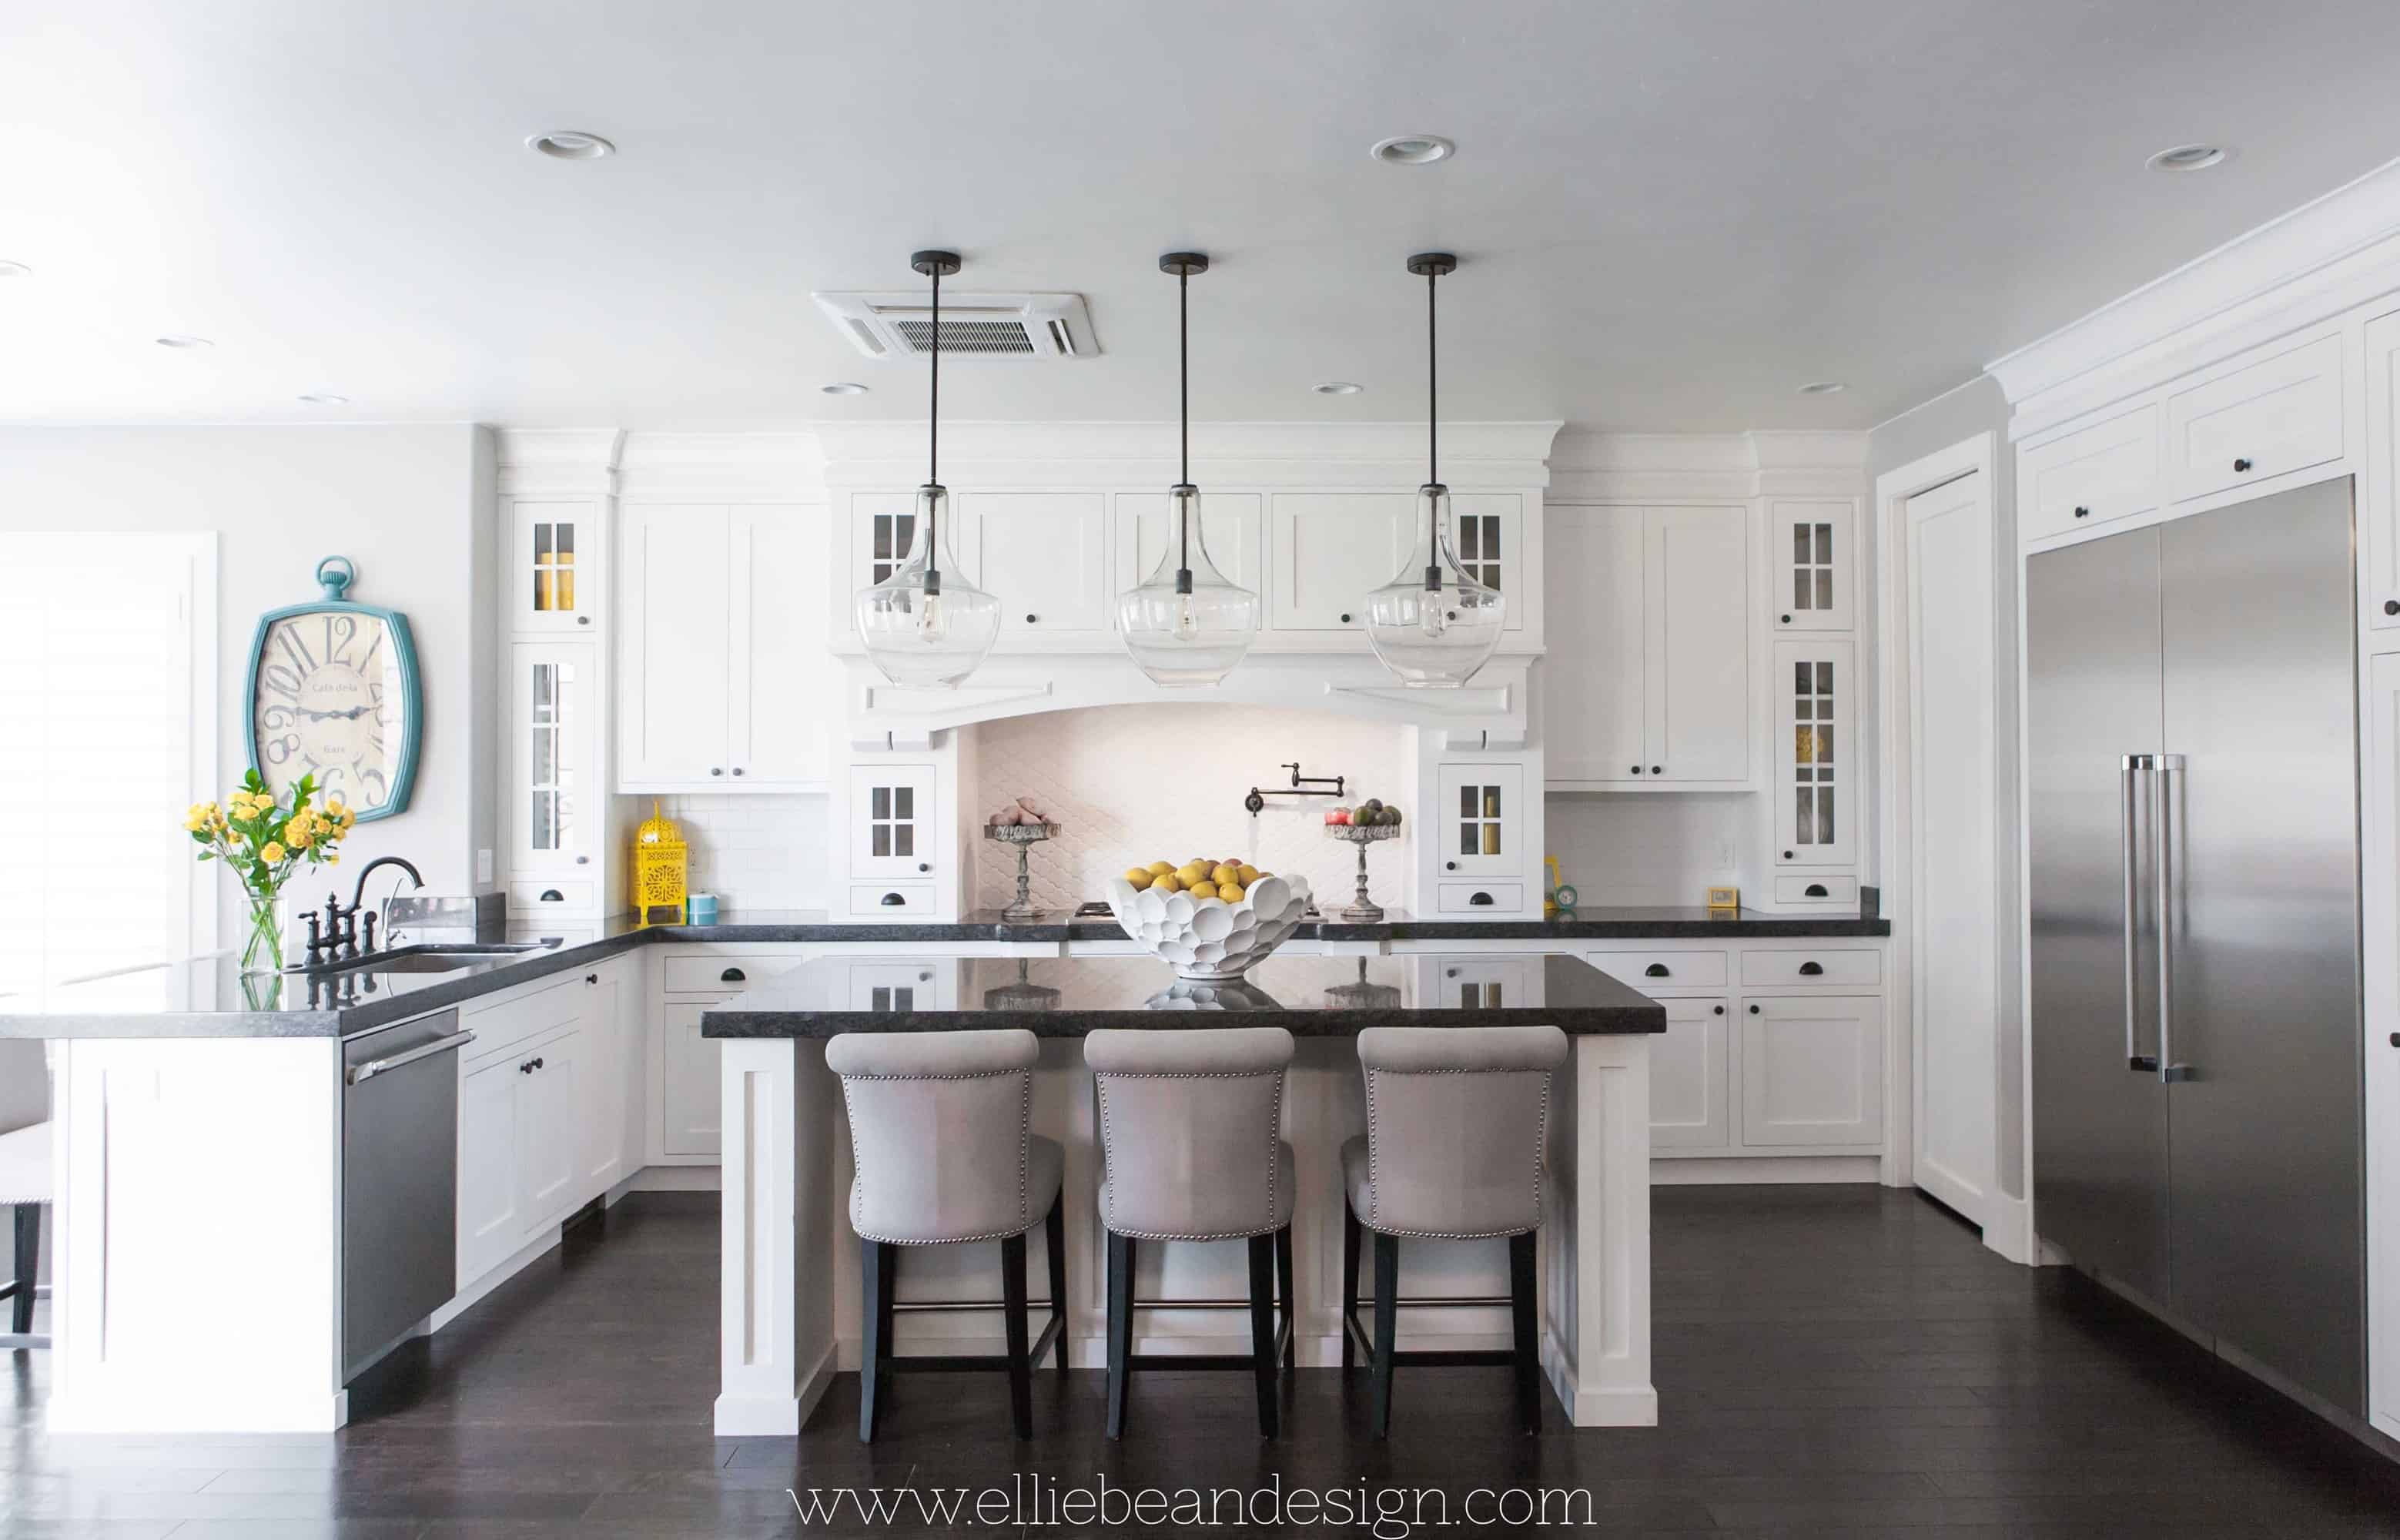 10 Rules To Create The Perfect White Kitchen Over The Big